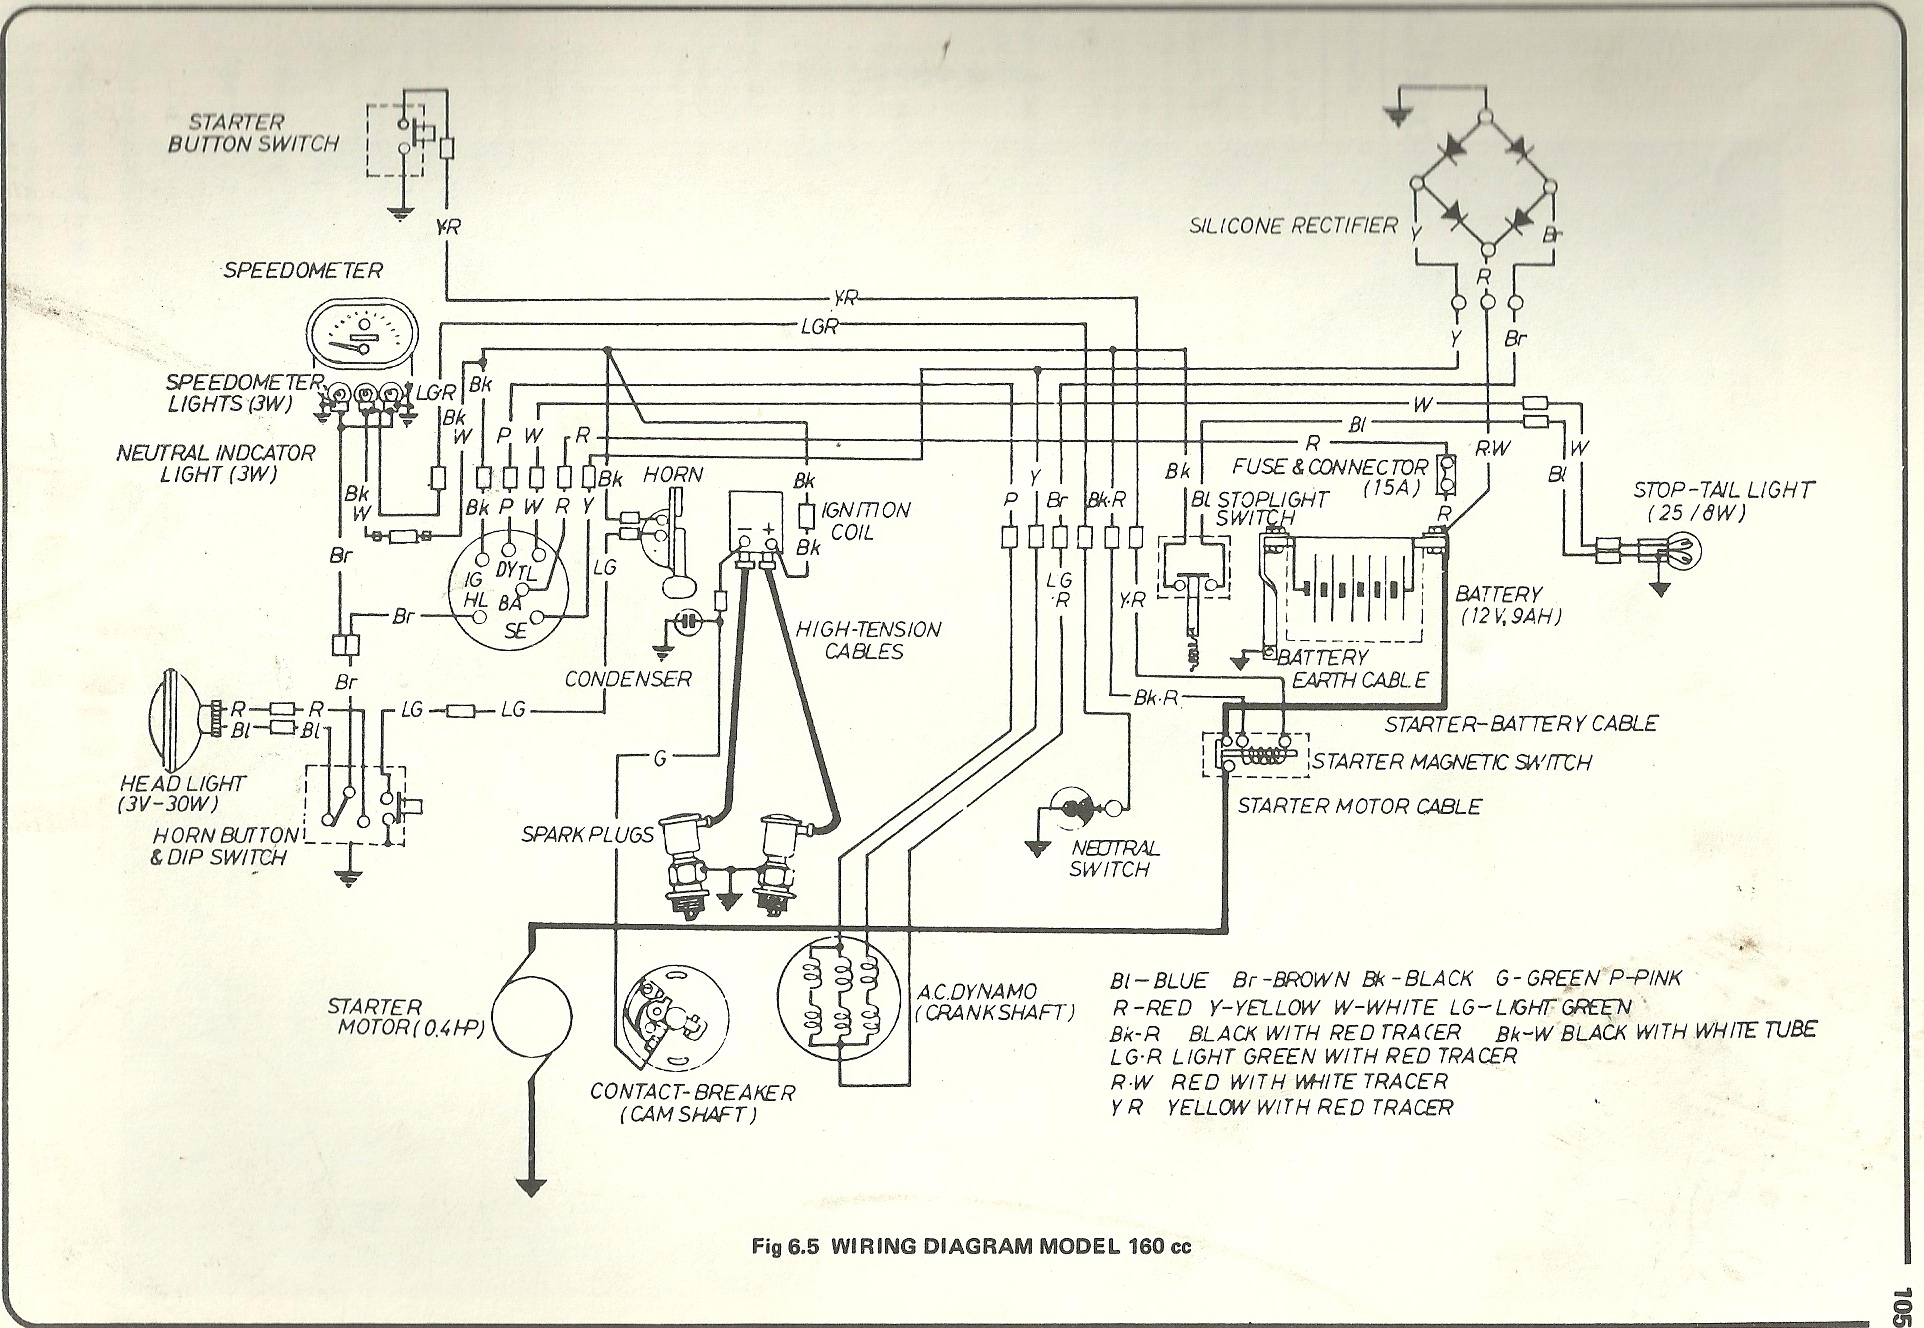 1974 Honda Trail 90 Wiring Diagram Trusted 1970 Ct70 Blue Images Gallery